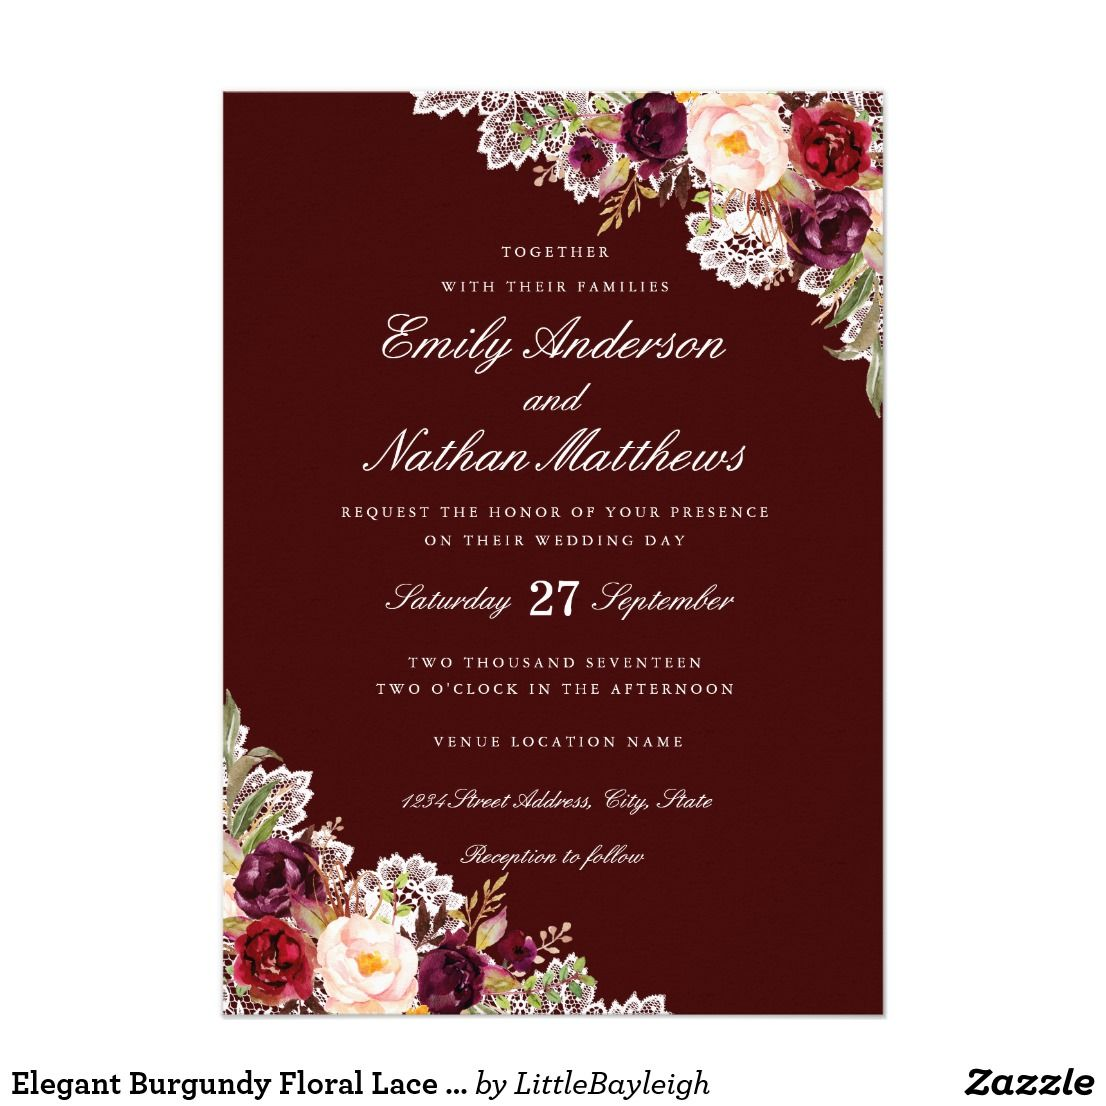 Elegant Burgundy Floral Lace Wedding Invitation Invitations